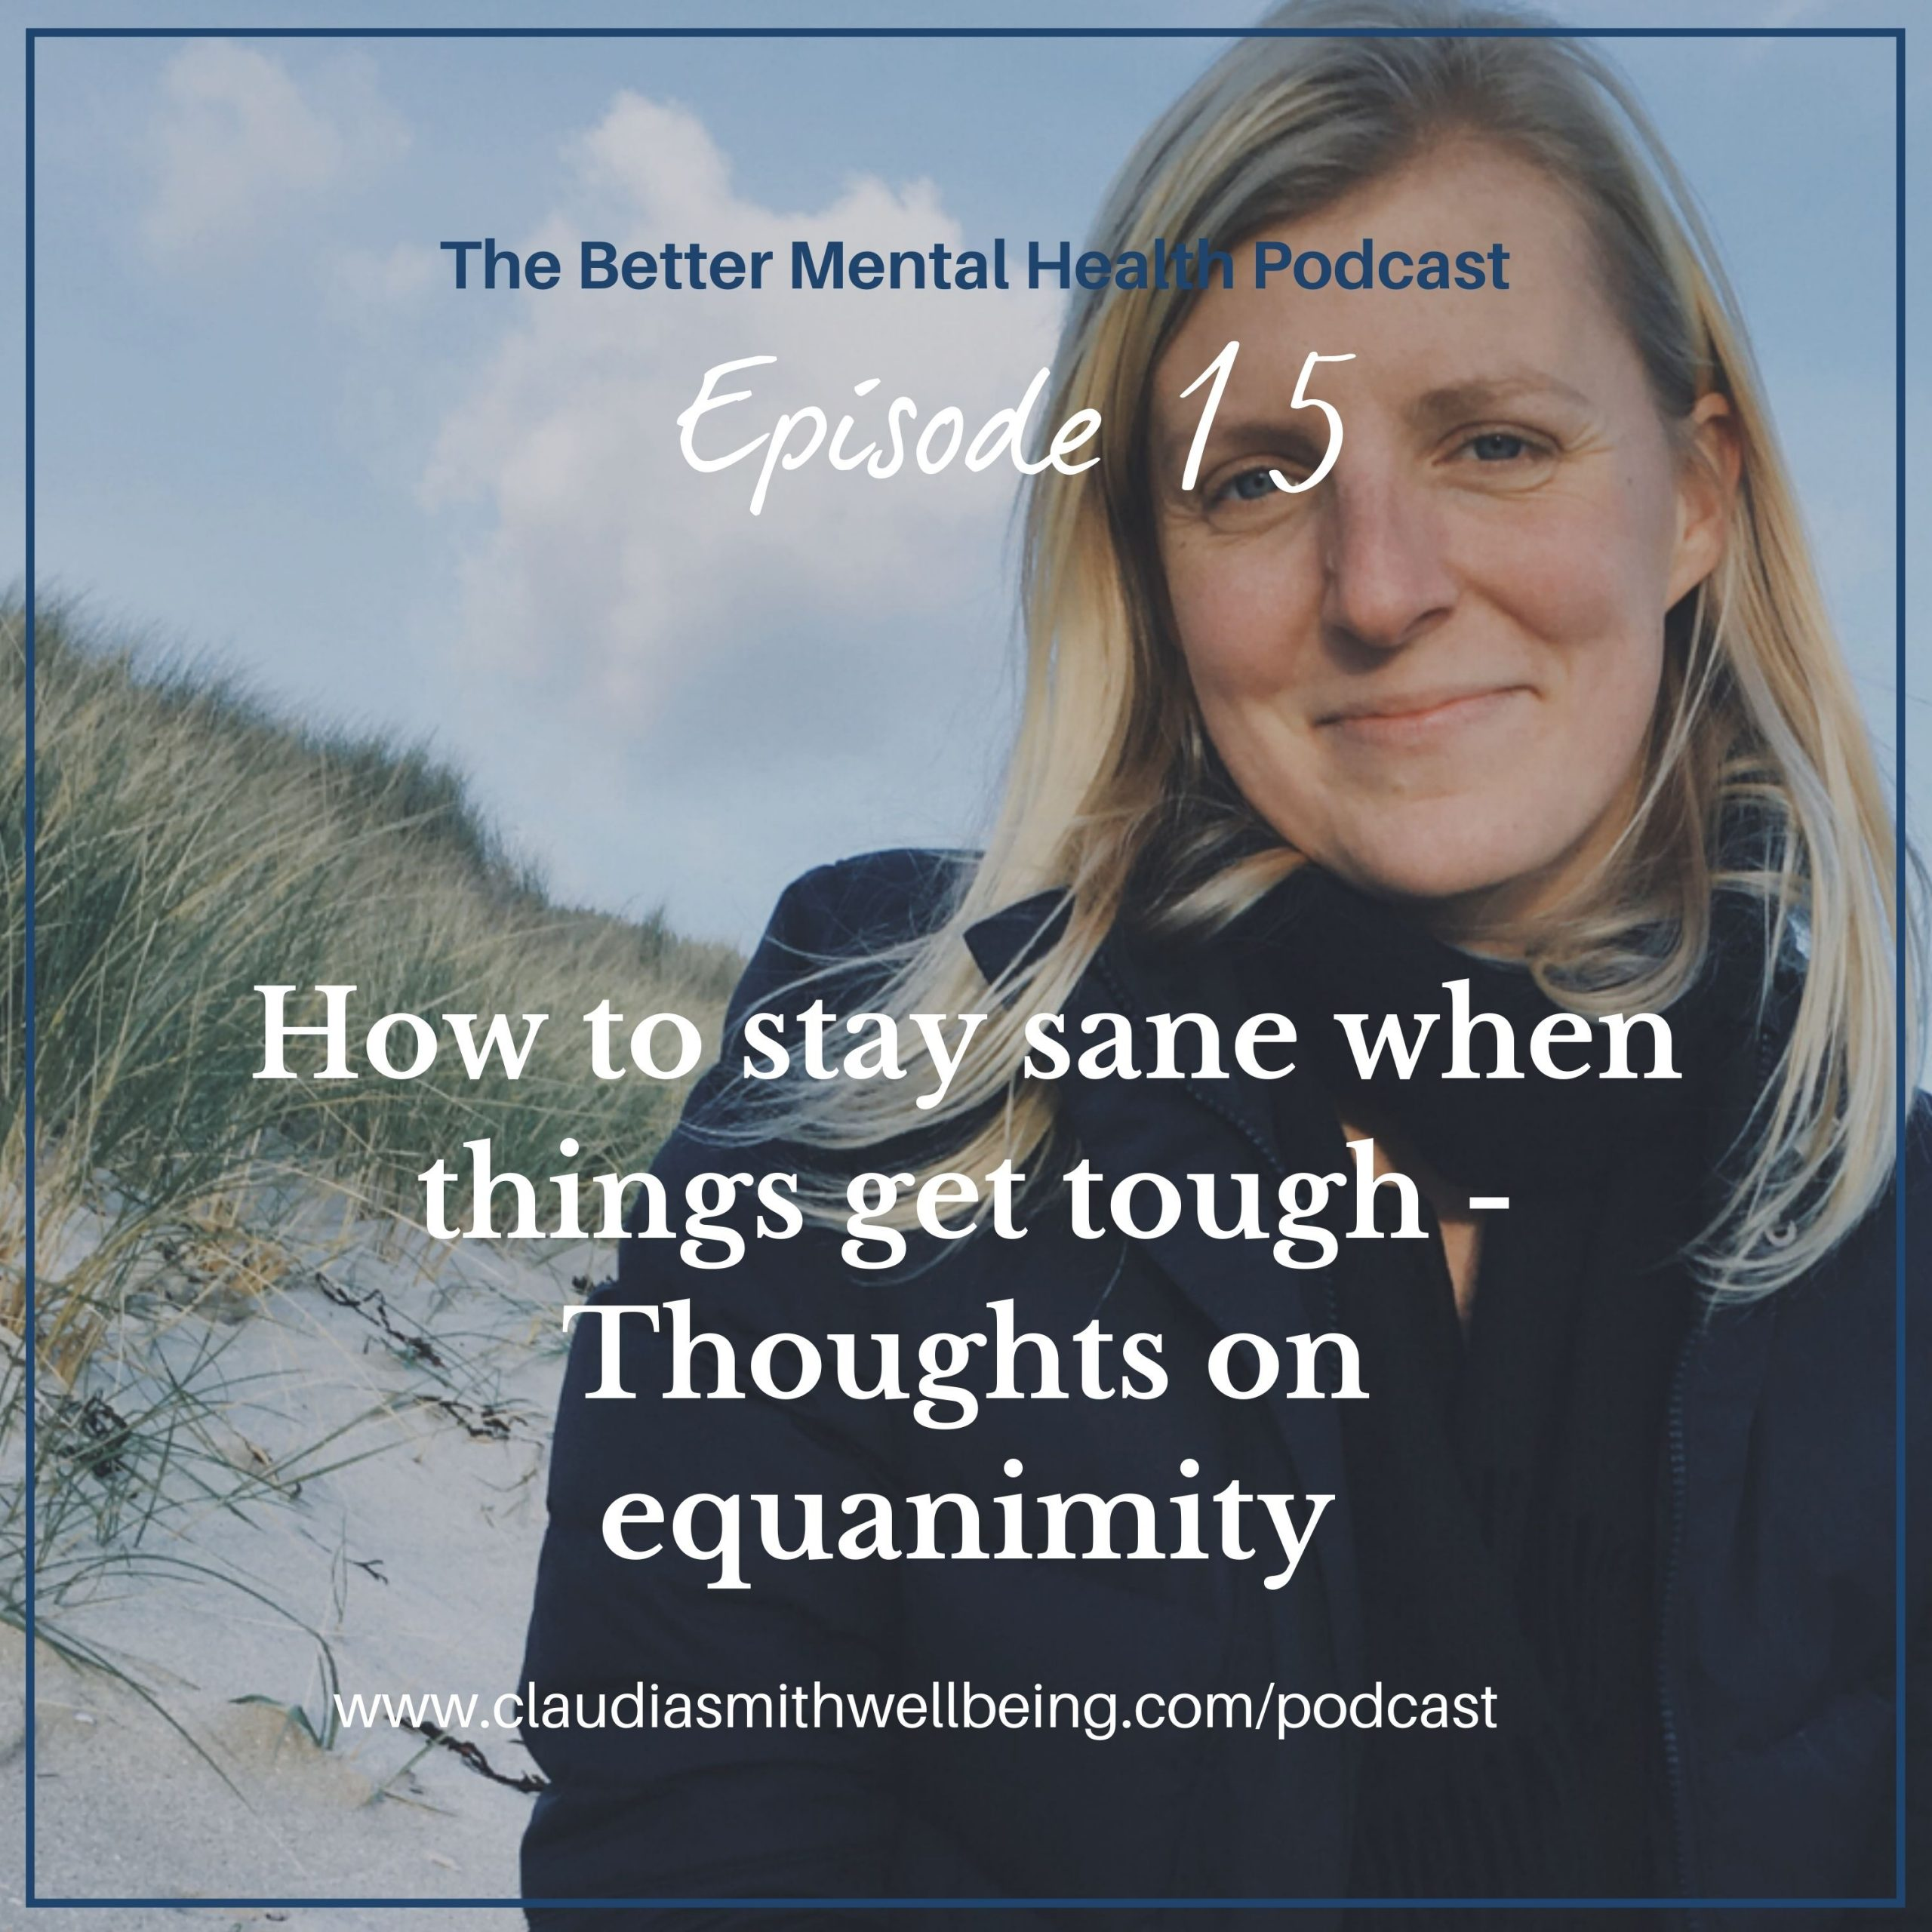 How to stay sane when things get tough – Thoughts on equanimity